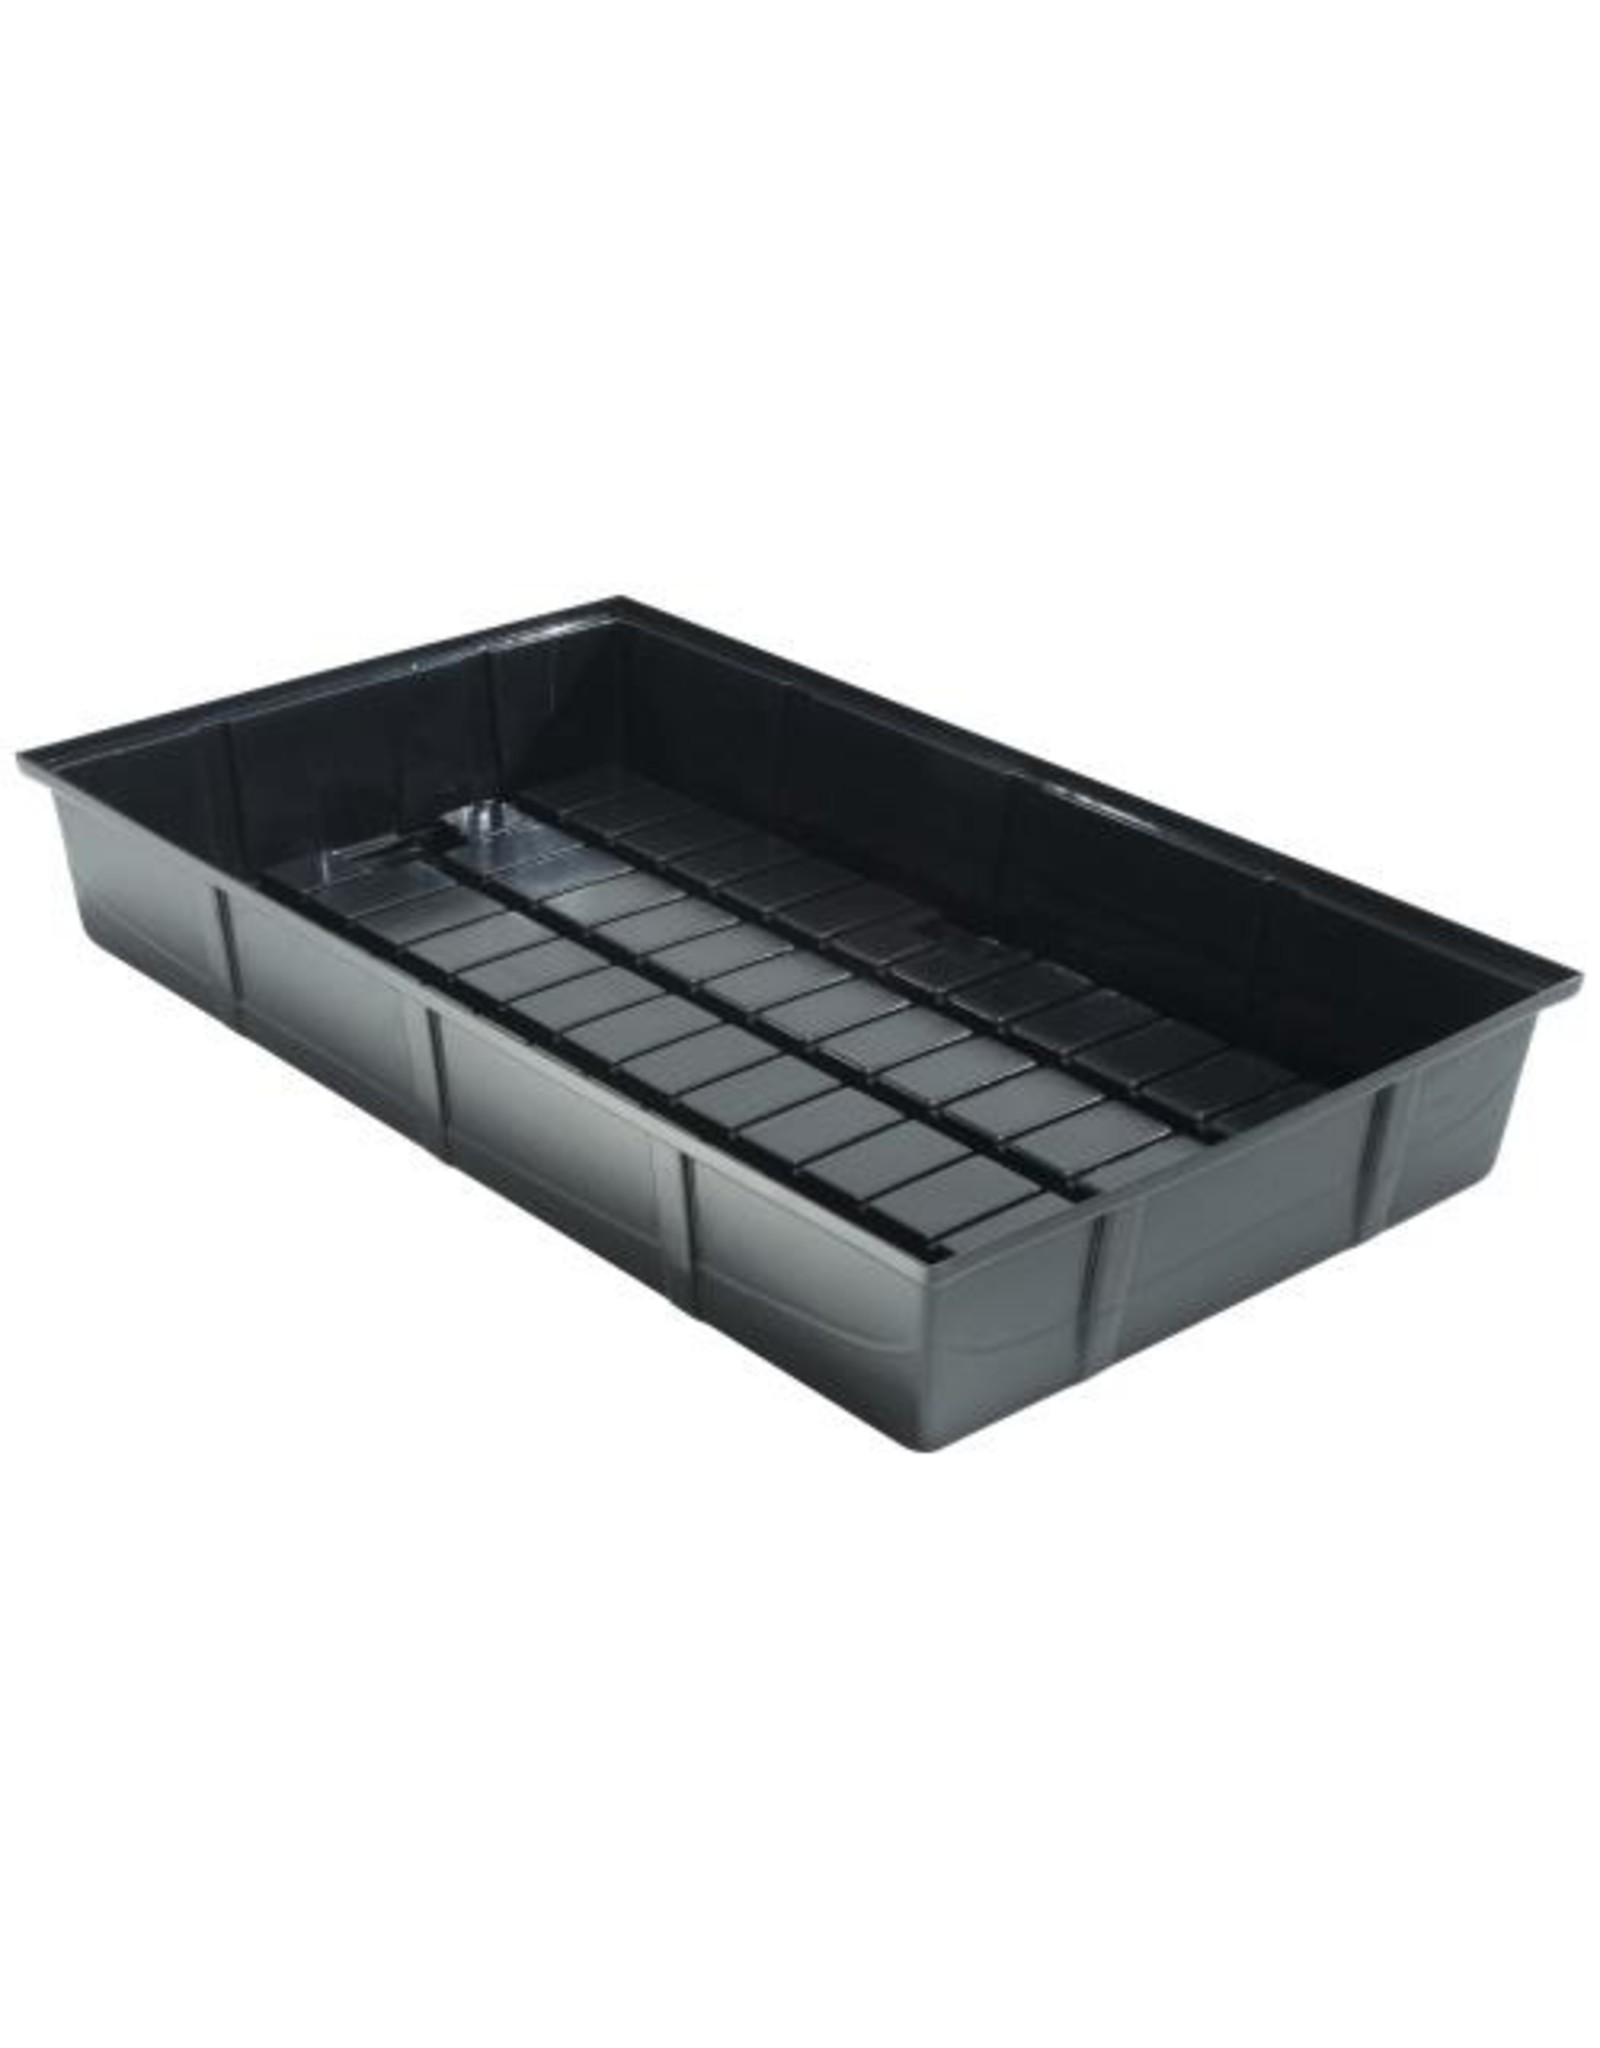 Grow Systems/Trays/Reservoirs Botanicare Tray 2 ft x 4 ft ID - Black